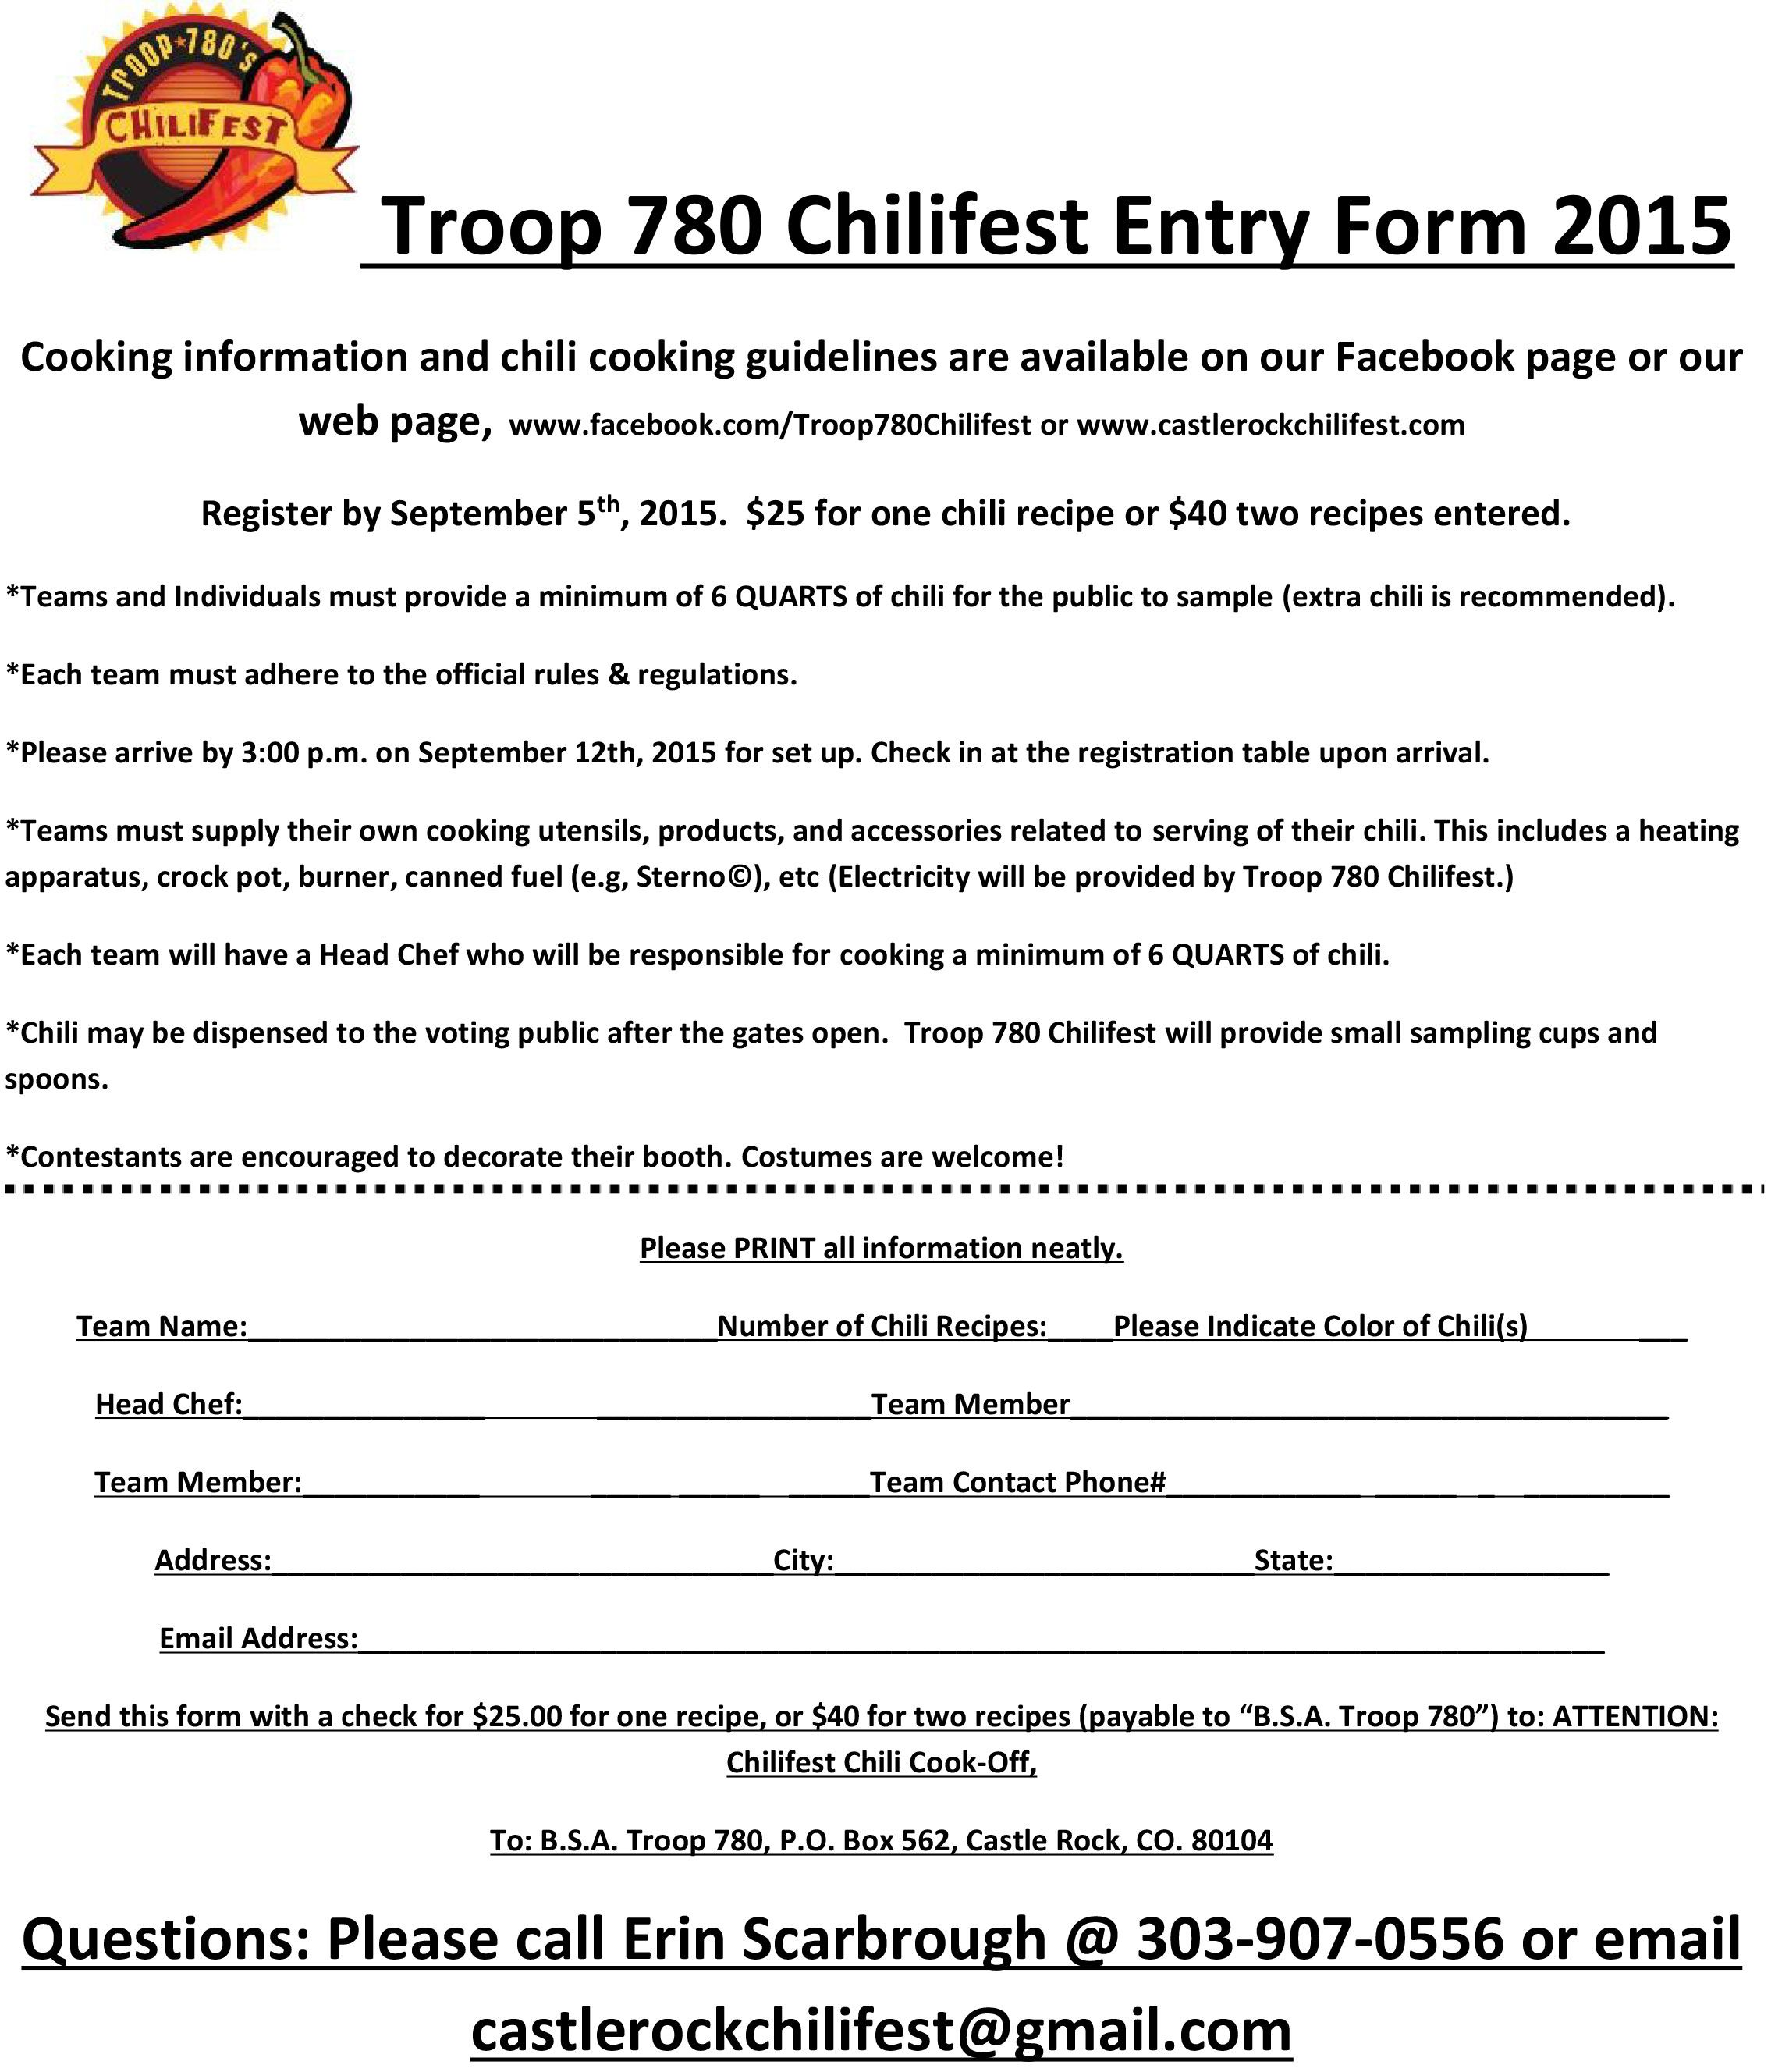 Chilifest Entry Form  Chilifest     Php